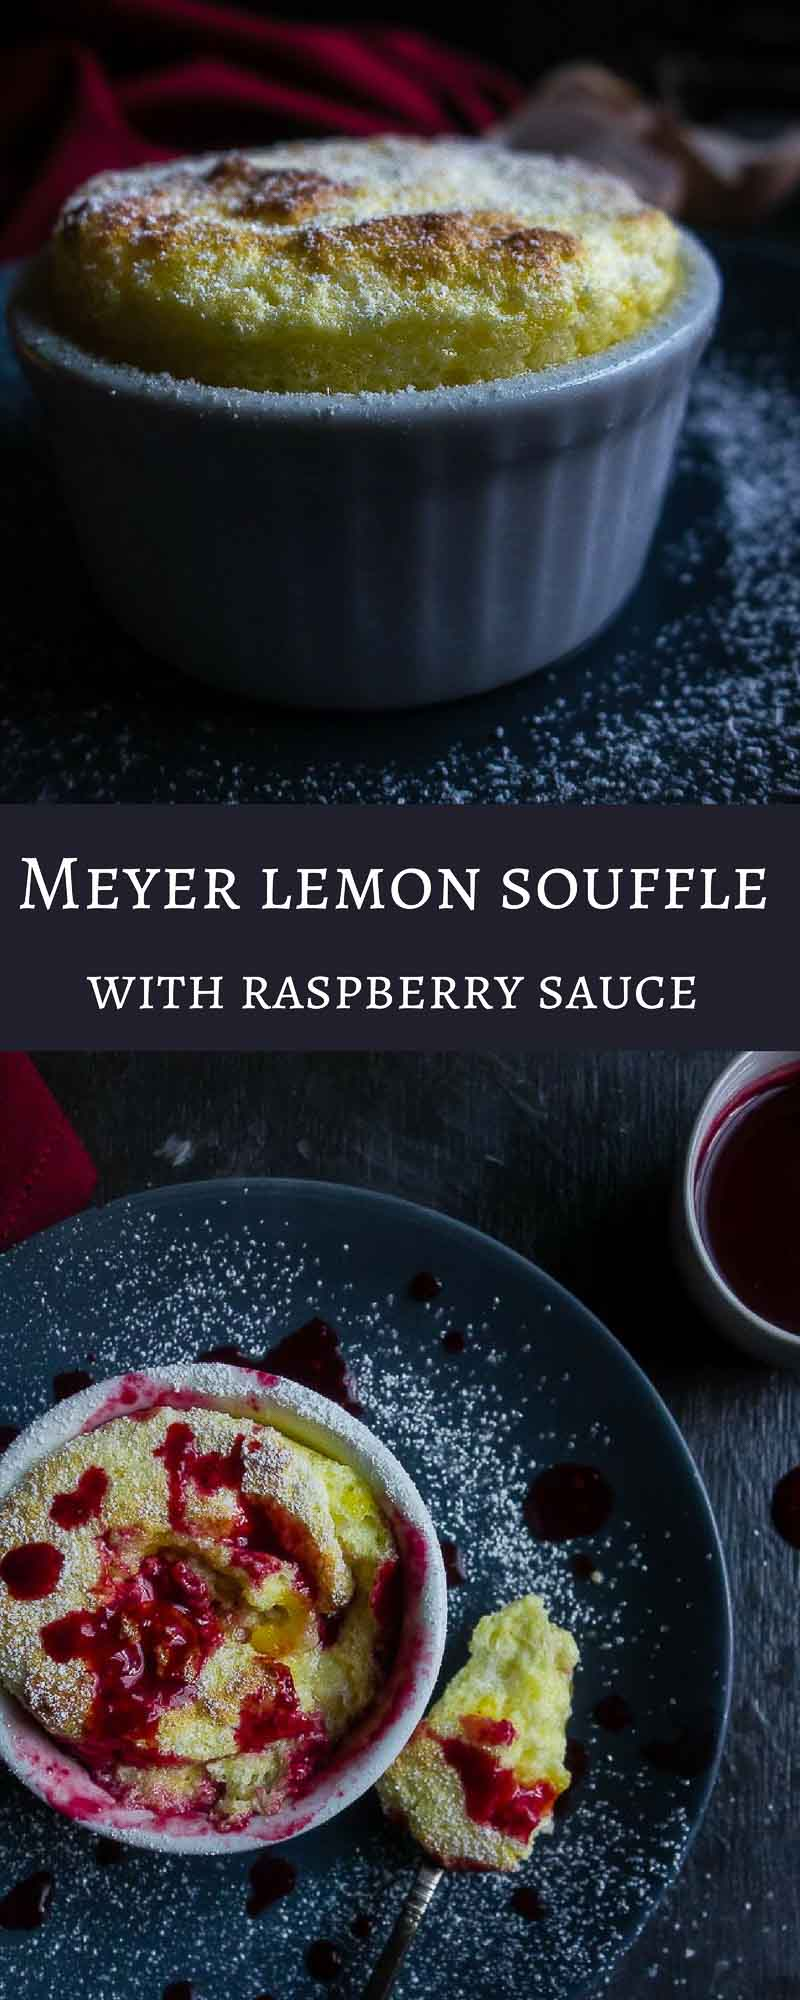 Light and fluffy with the perfect hint of fresh lemon flavor, this Meyer Lemon Souffle is quick to make and perfect served with the most amazing fresh made raspberry sauce!meyer lemon recipes | best lemon recipes | lemon desserts | french desserts | spring desserts | how to make souffle | homemade raspberry sauce | fresh raspberry sauce | lemon souffle pudding | lemon custard | lemon curd